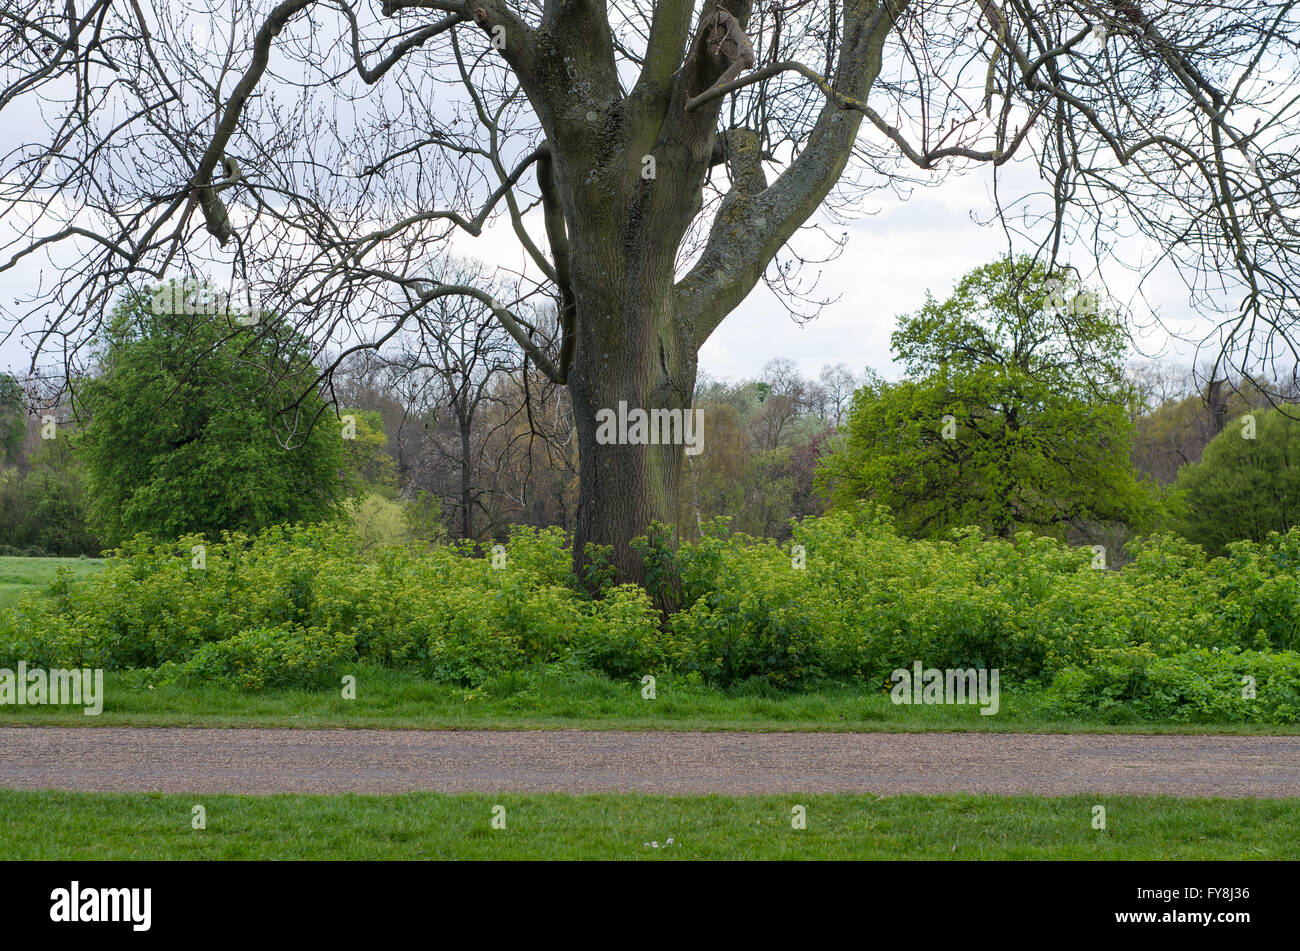 A patch of Alexanders (Smyrnium olusatrum) is left in Kensington Gardens, London, providing habitat for wildlife - Stock Image